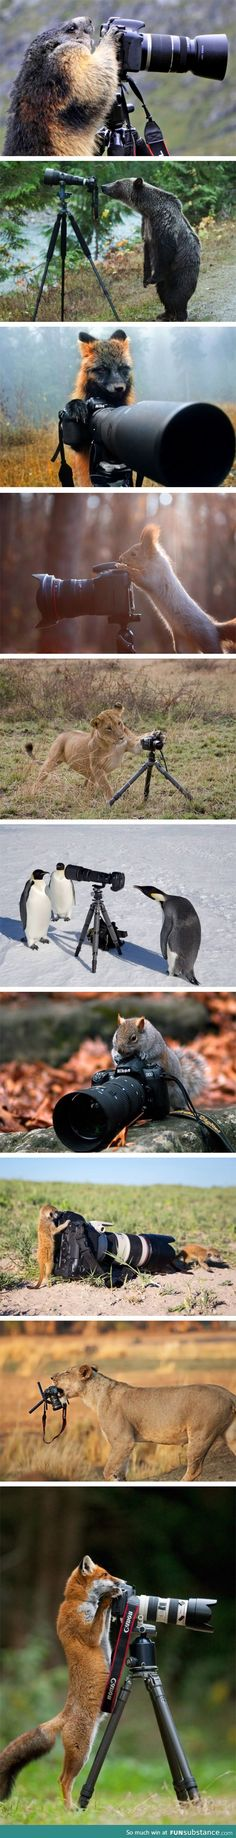 Animal photographers